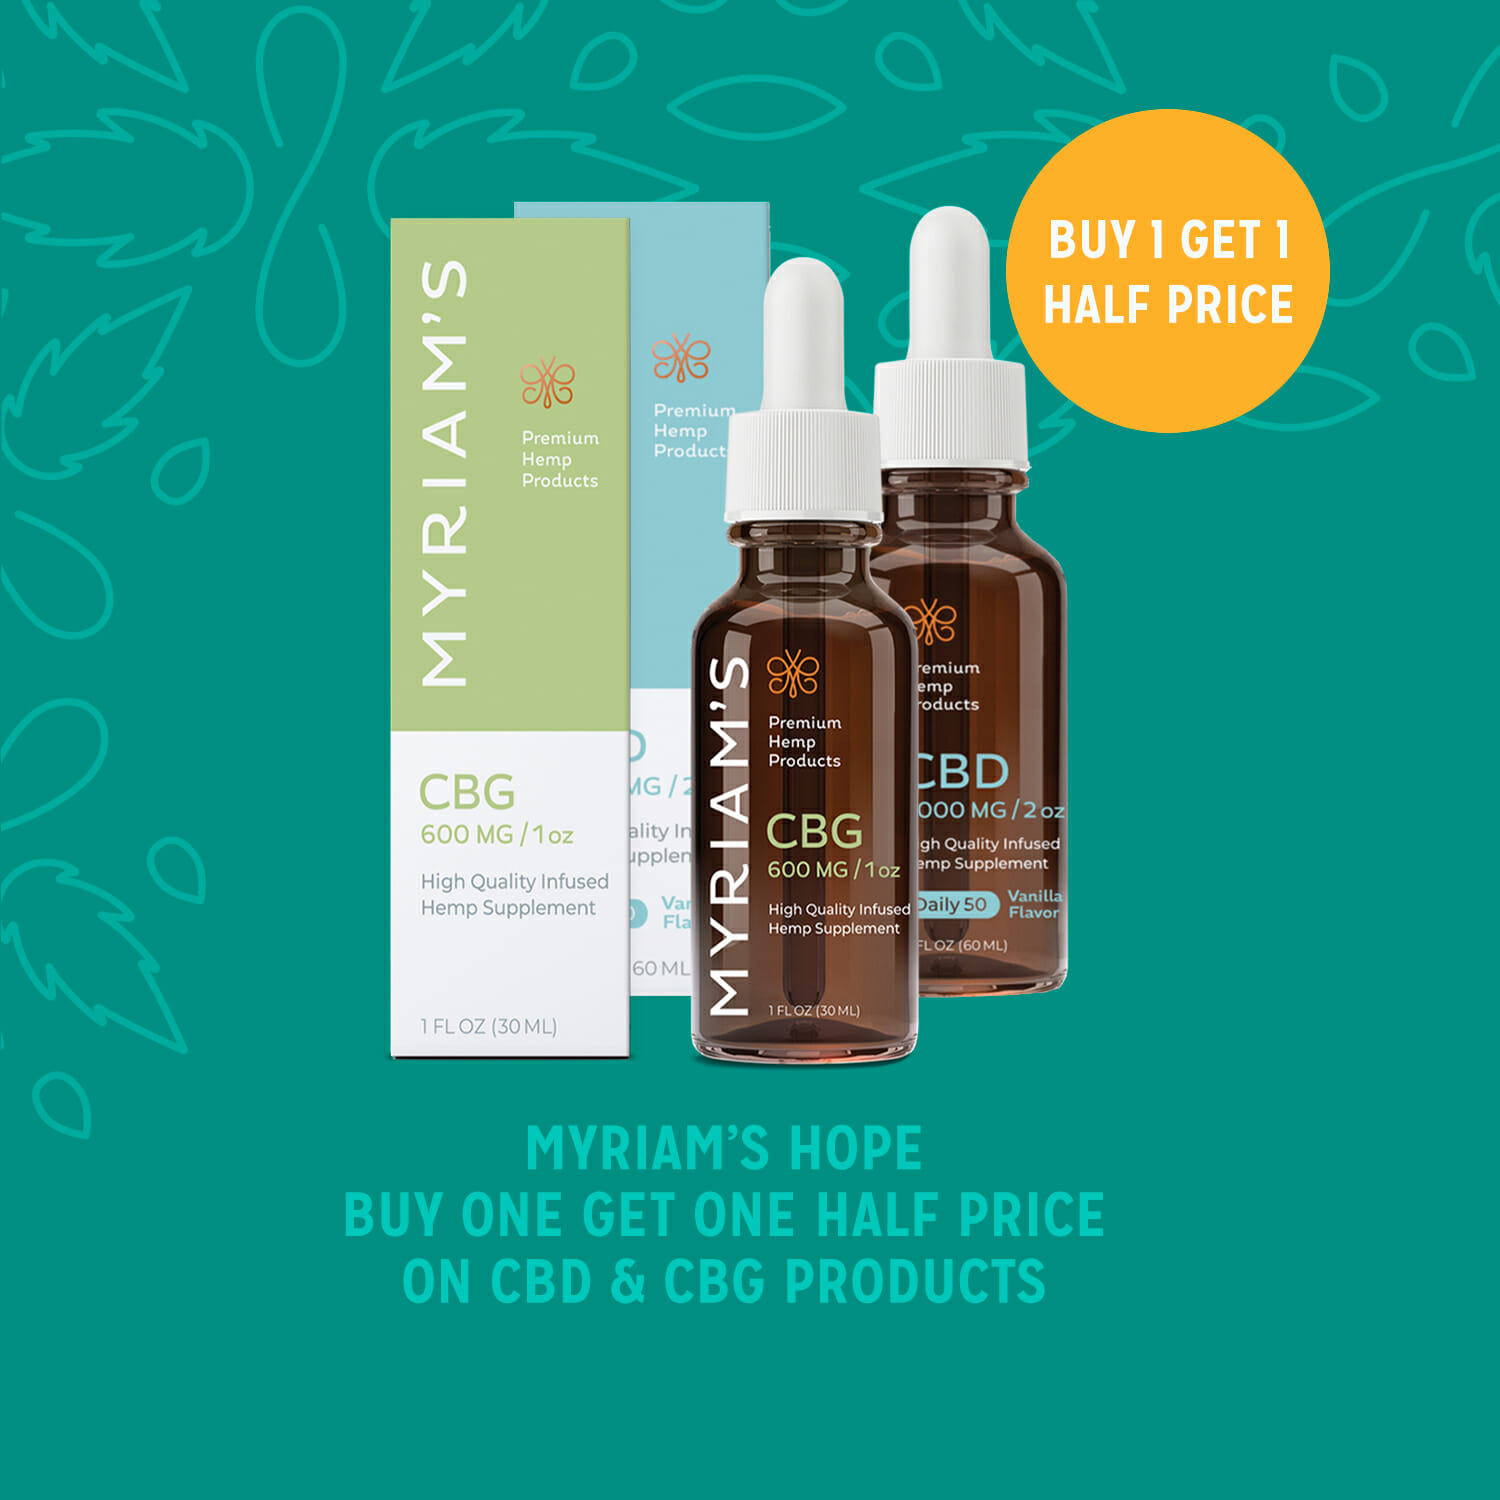 myriams_hope_product_offer